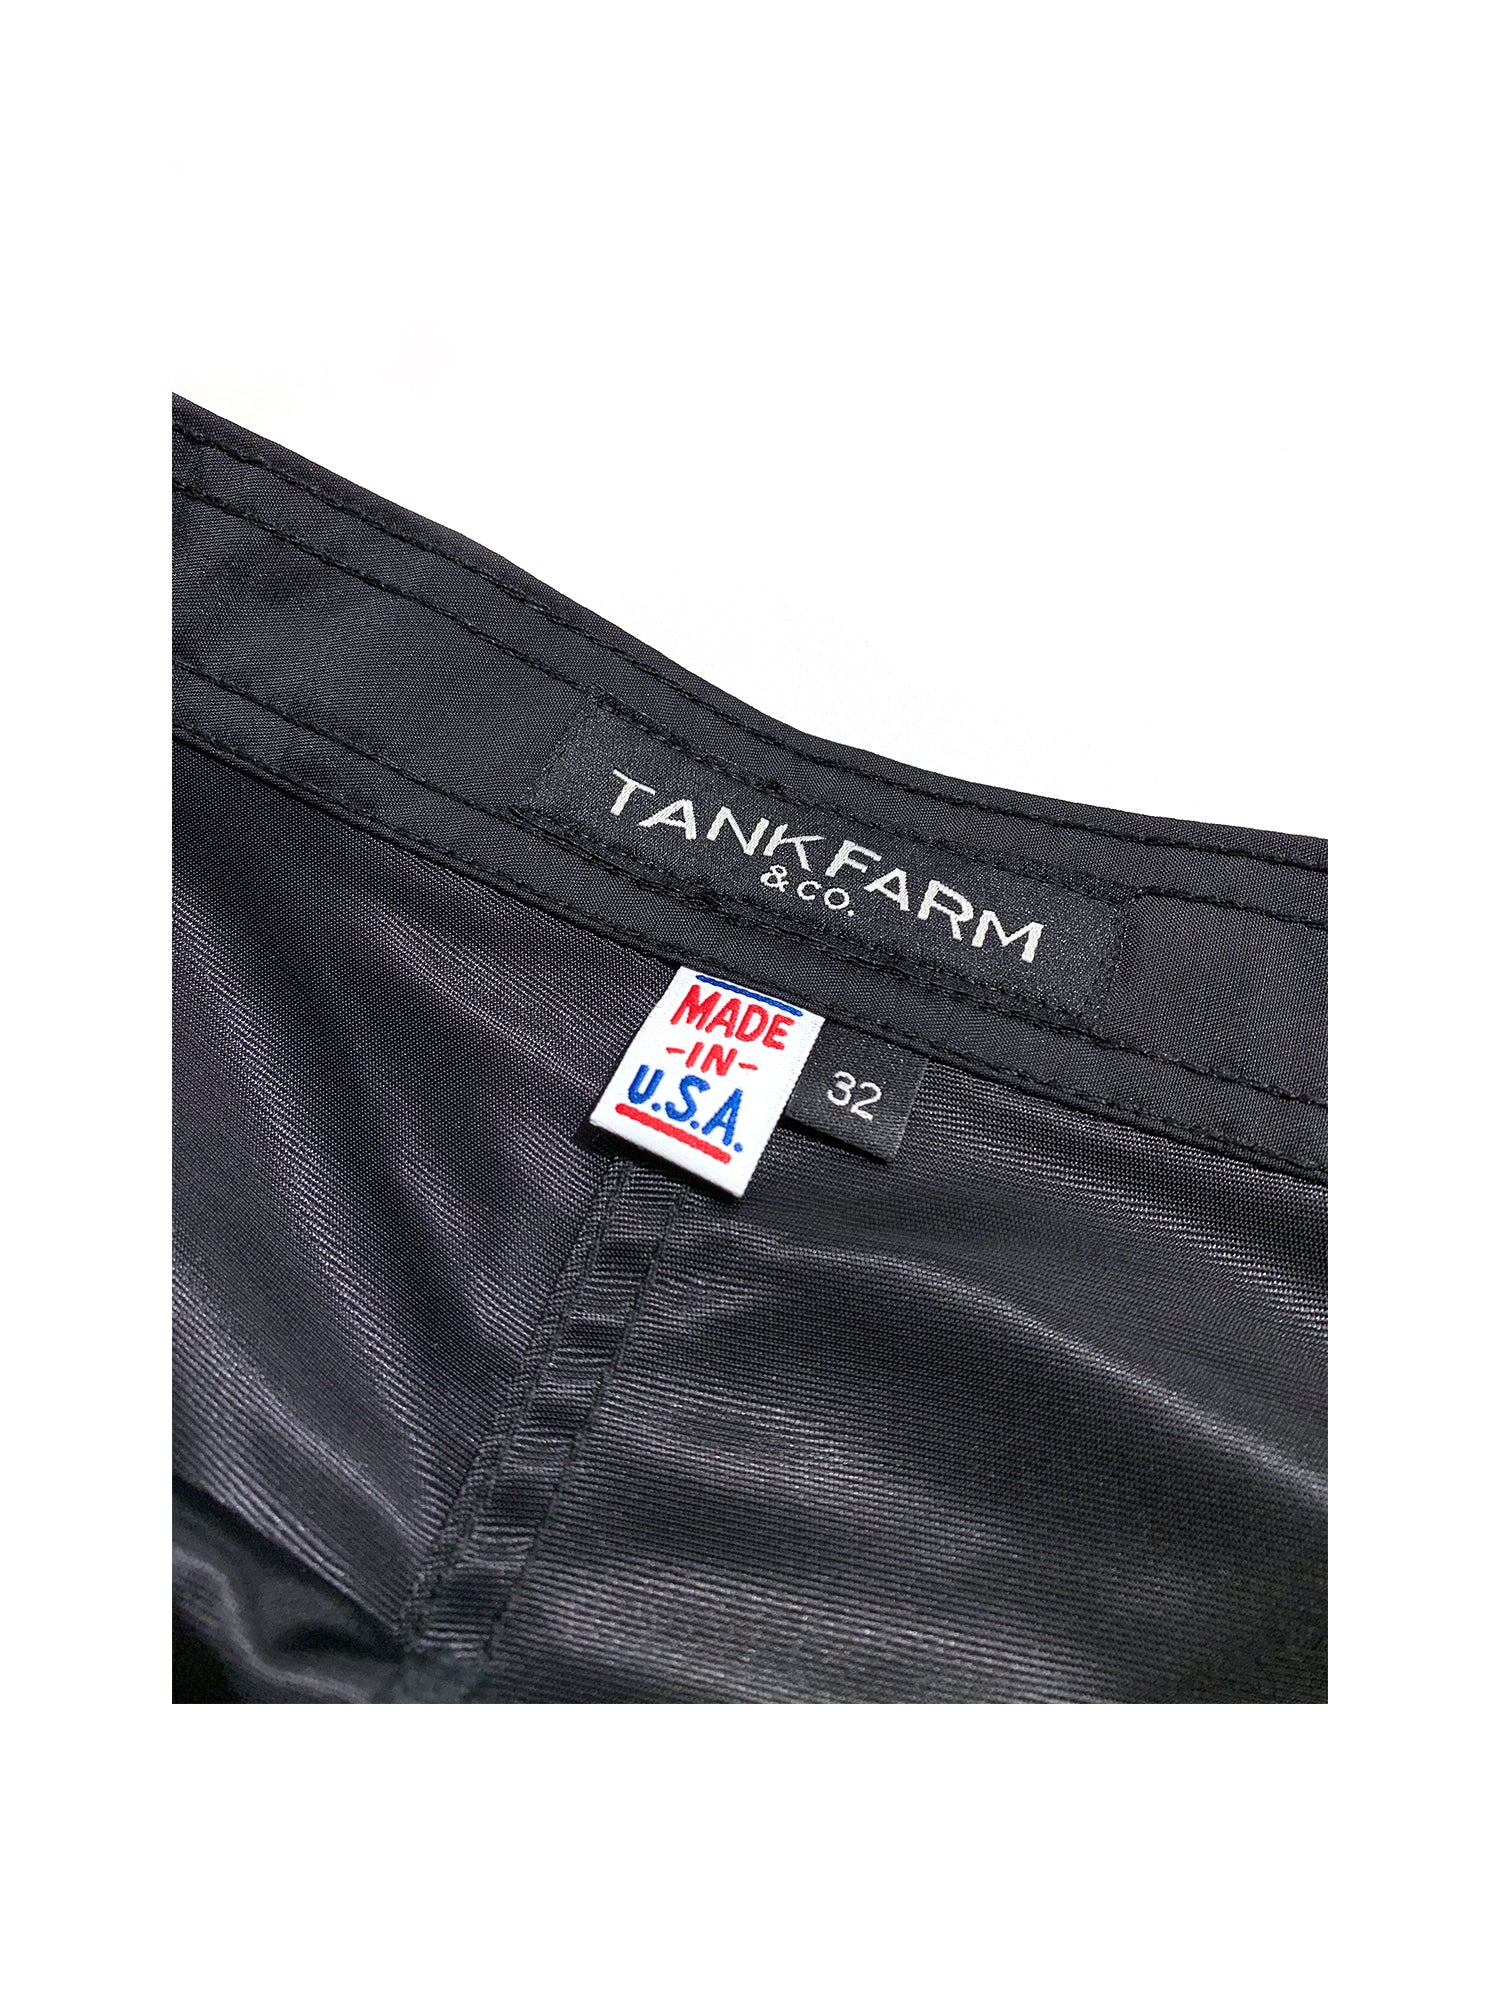 SEASIDE BOARDSHORT- BLACK - Tankfarm & Co.